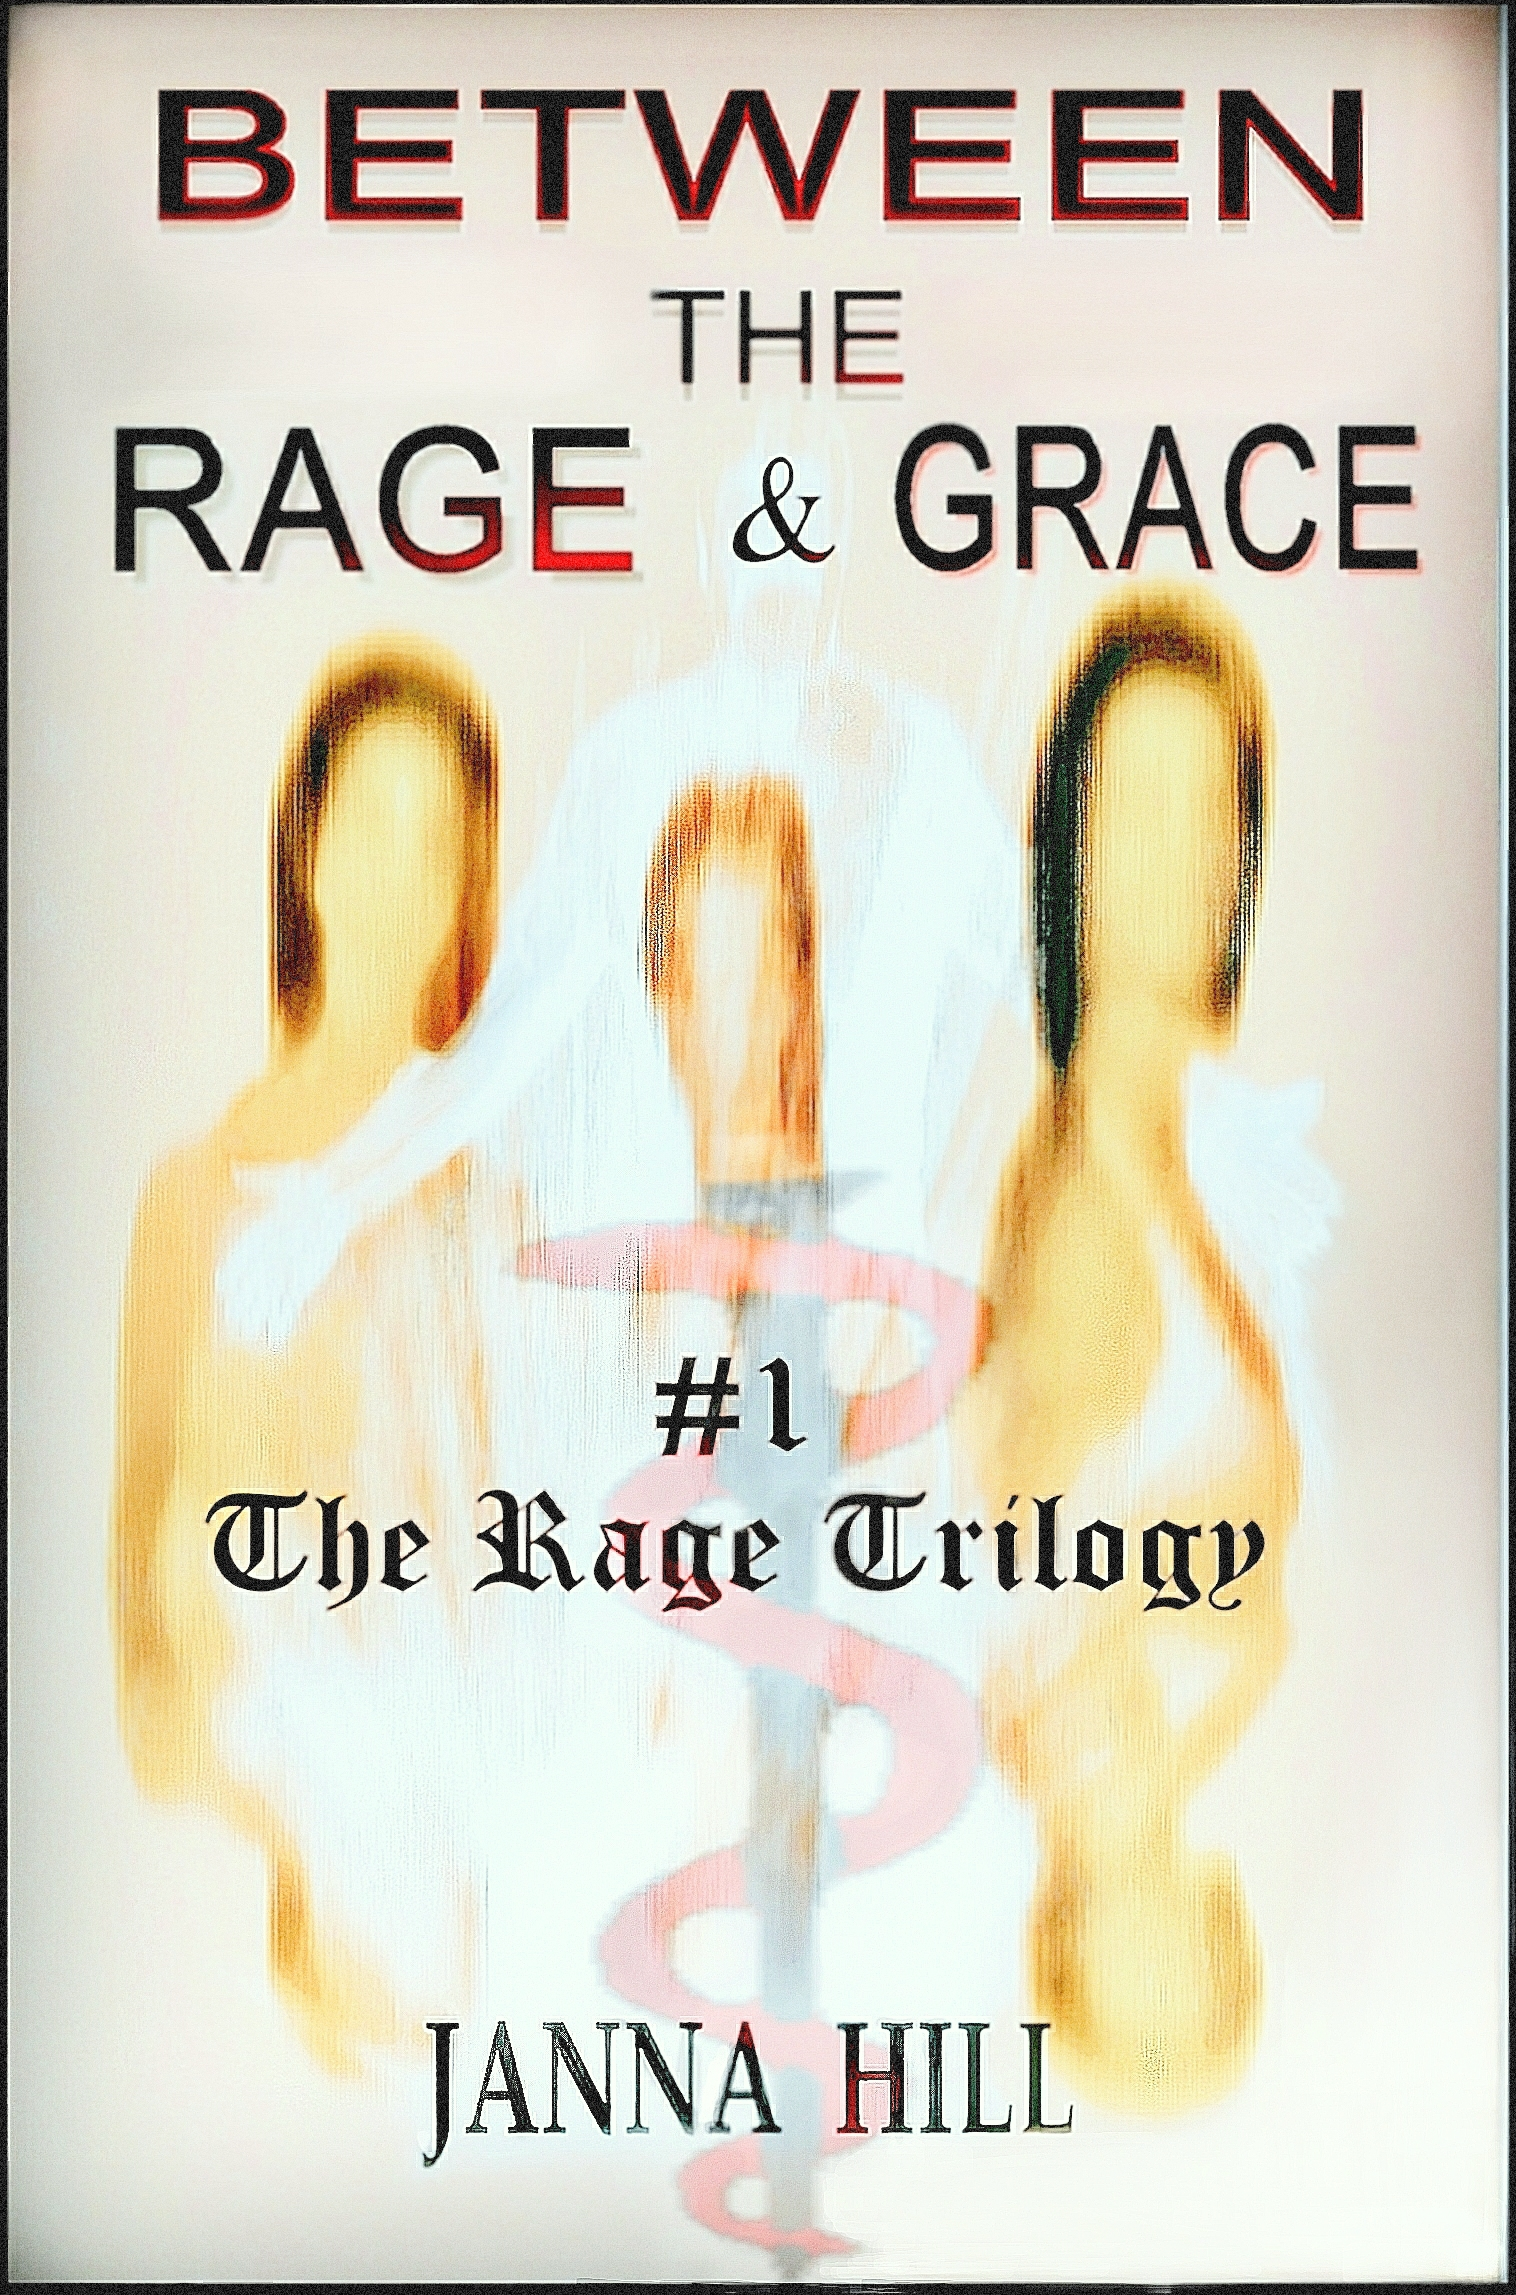 Janna Hill - Between the Rage and Grace (Book 1 in The Rage Trilogy)